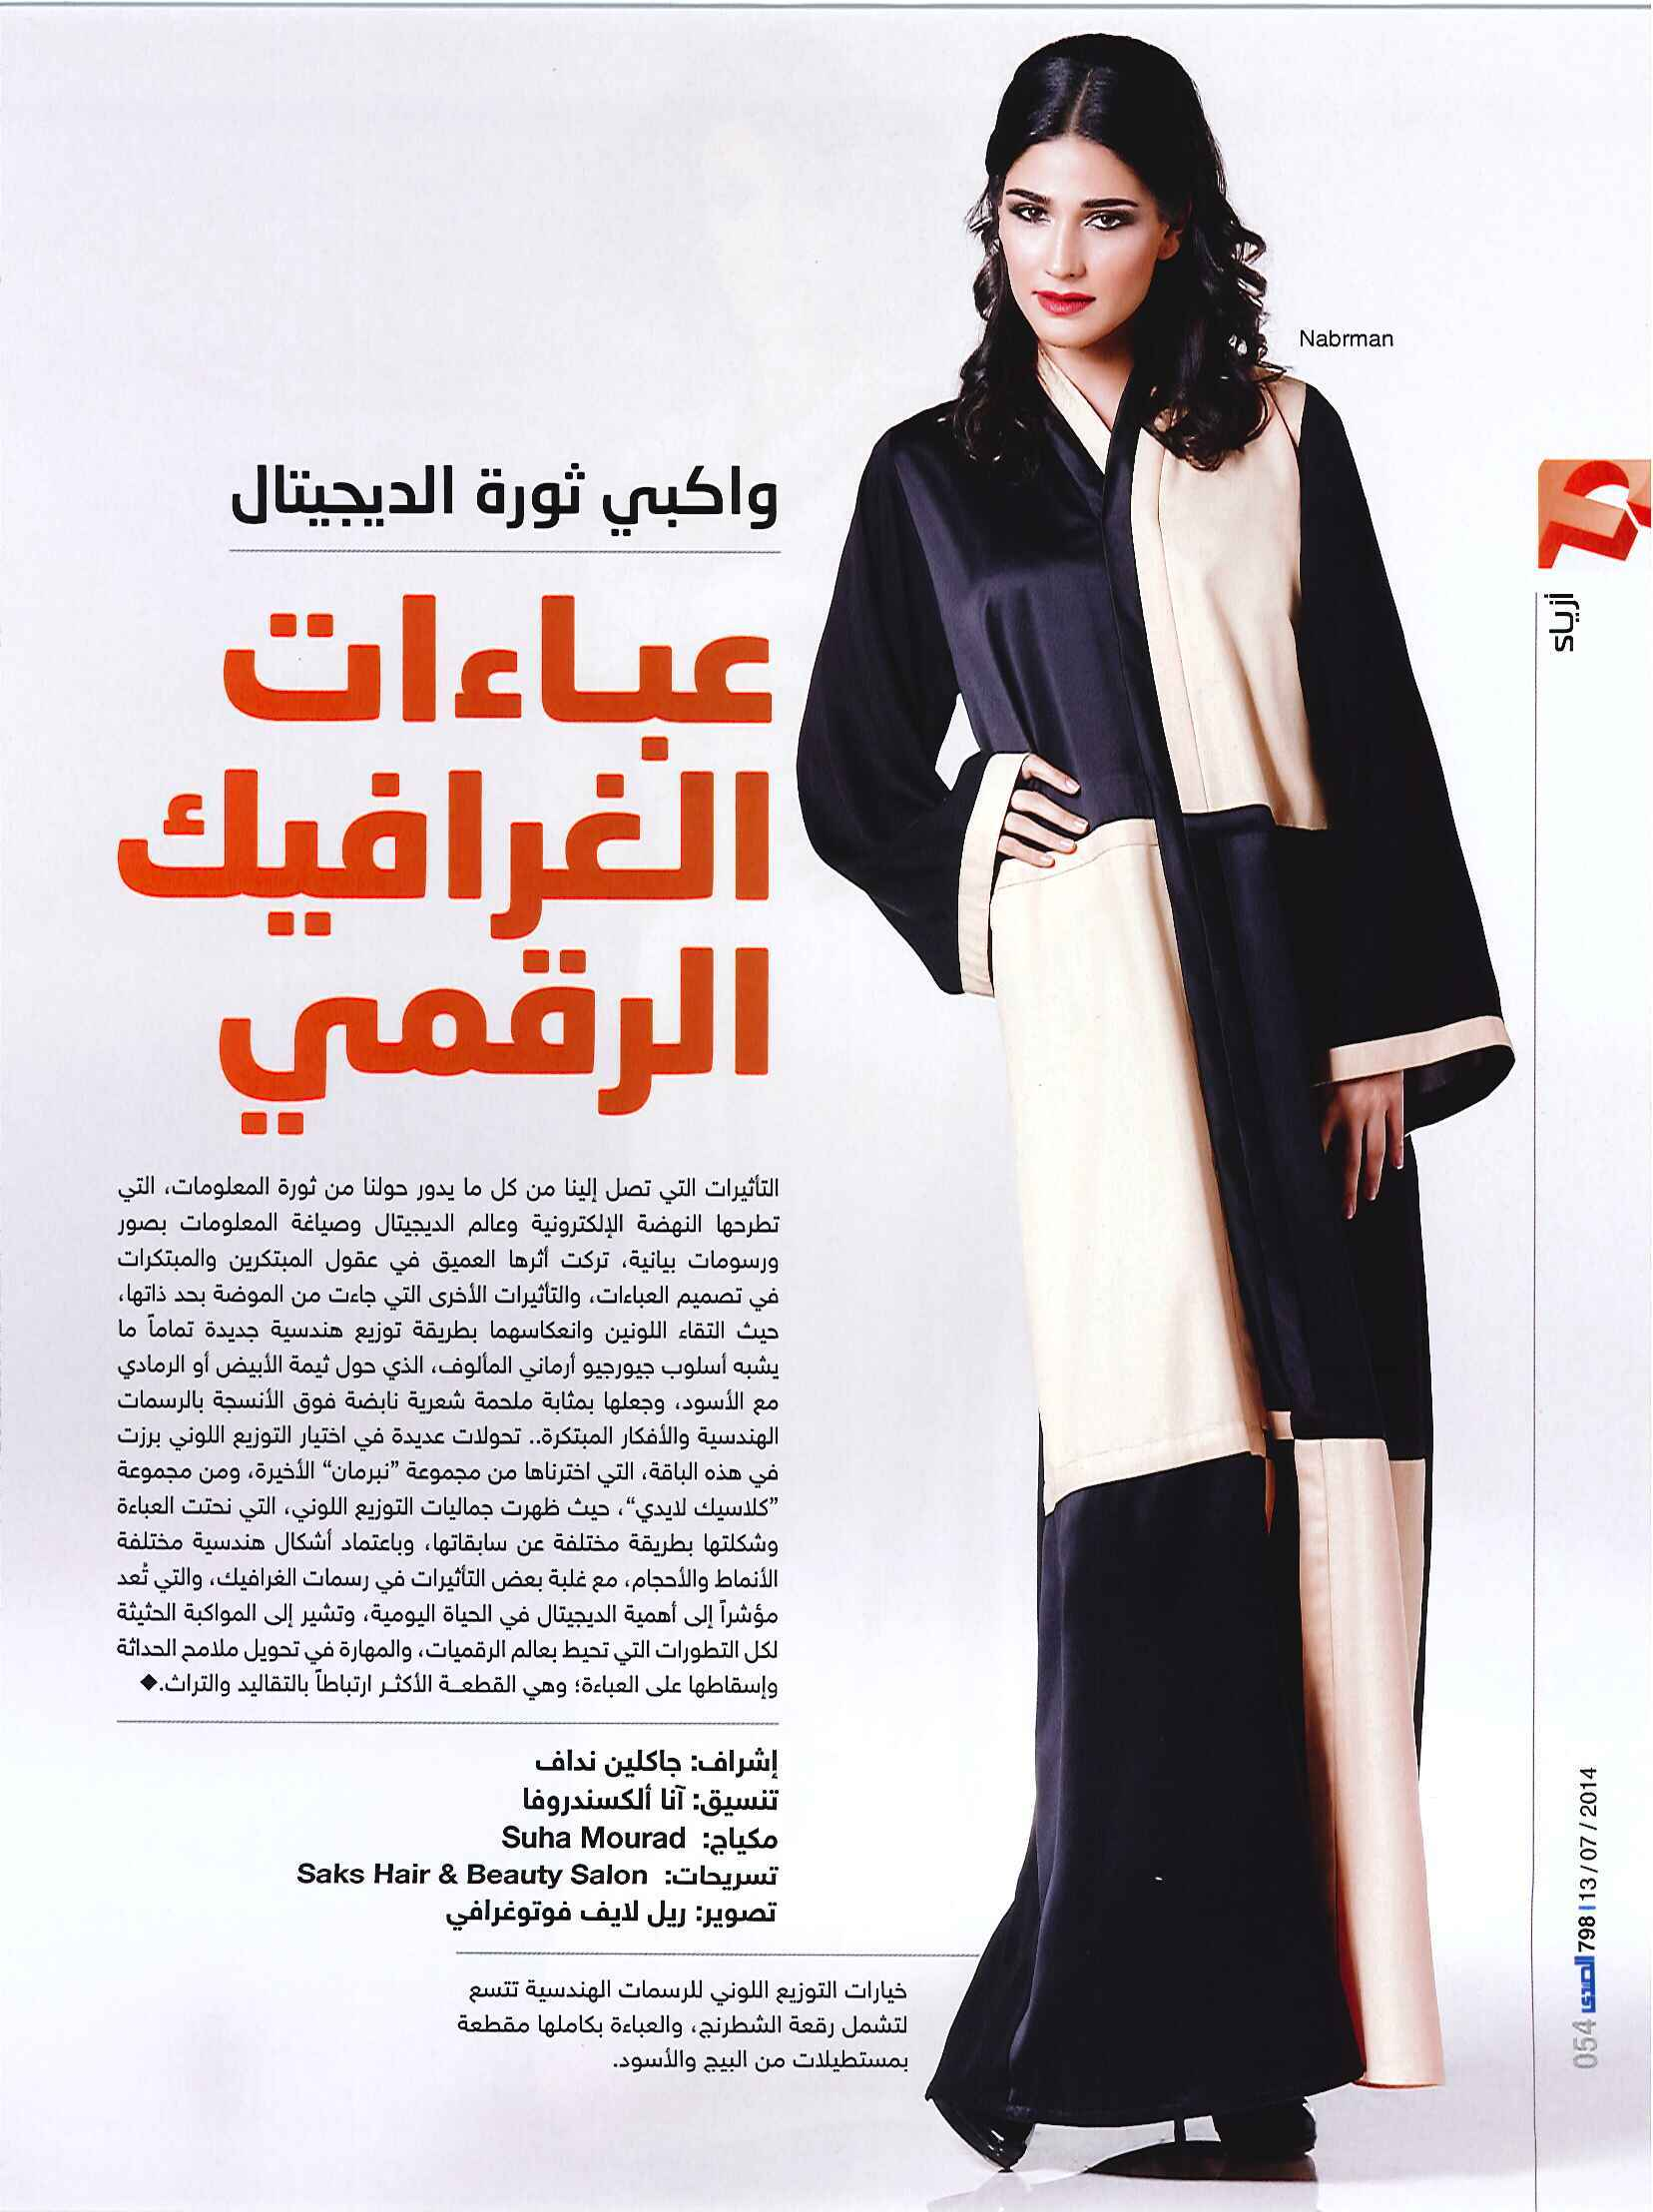 FLC Models & Talents - Catalogue Shoots - Al Sada - Veronica